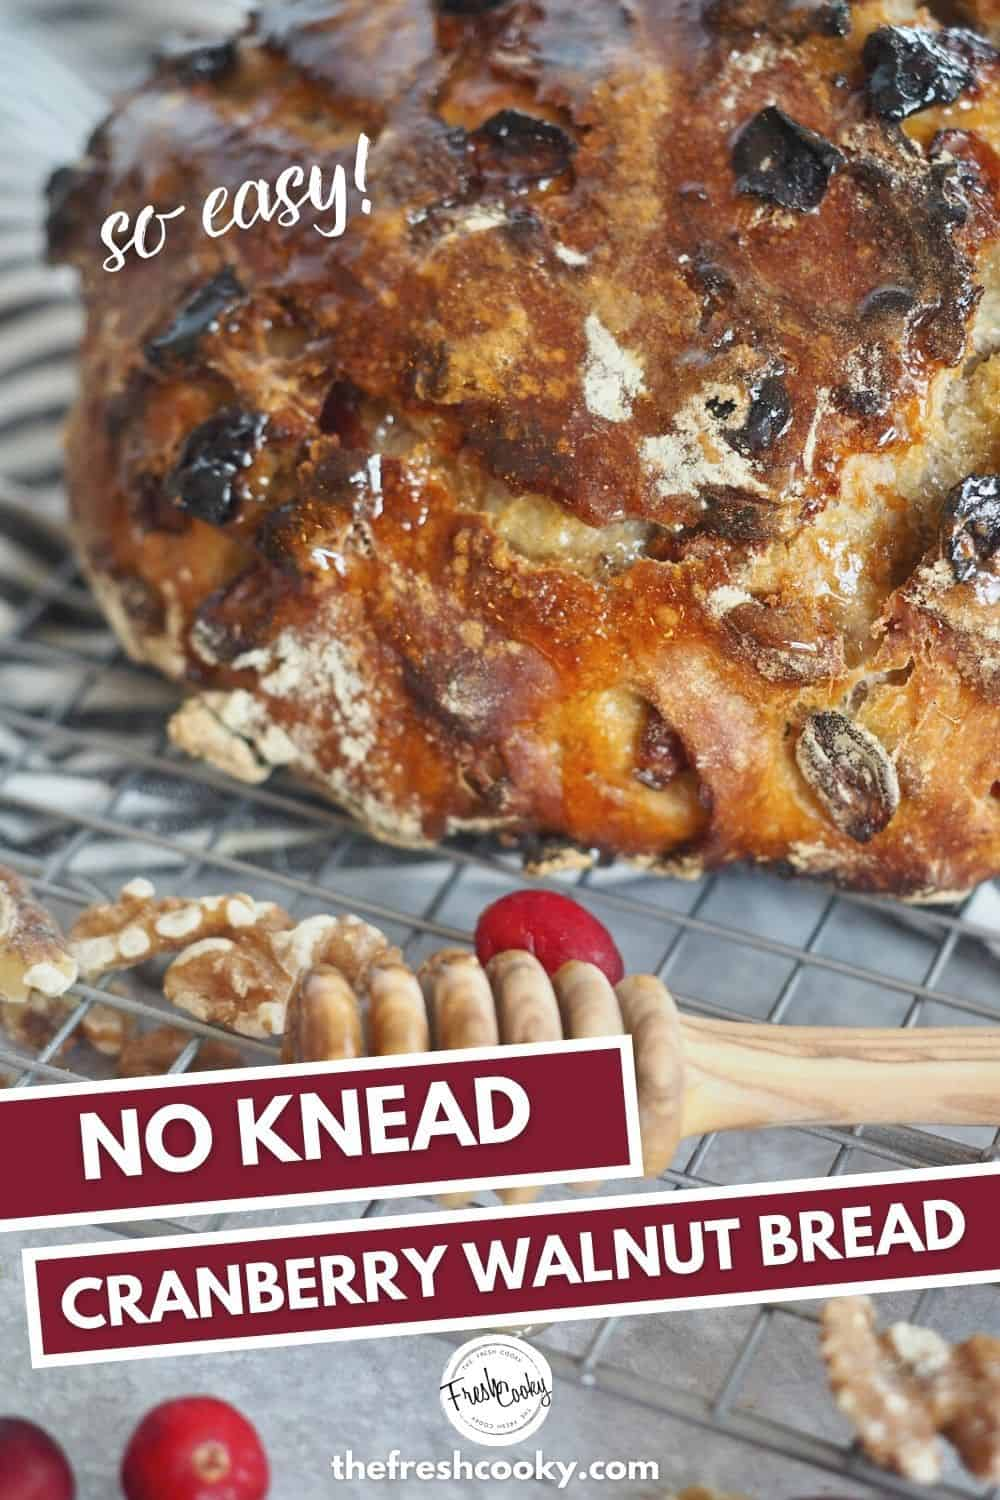 An easy recipe for Artisan Cranberry Nut Bread recipe from The Fresh Cooky is simply the best. A no knead rustic bread, using a dutch oven to get a crispy outside and chewy inside. Delicious with dried cranberries, walnuts and just a few pantry ingredients. #thefreshcooky #cranberrynutbread #nokneadbread  via @thefreshcooky